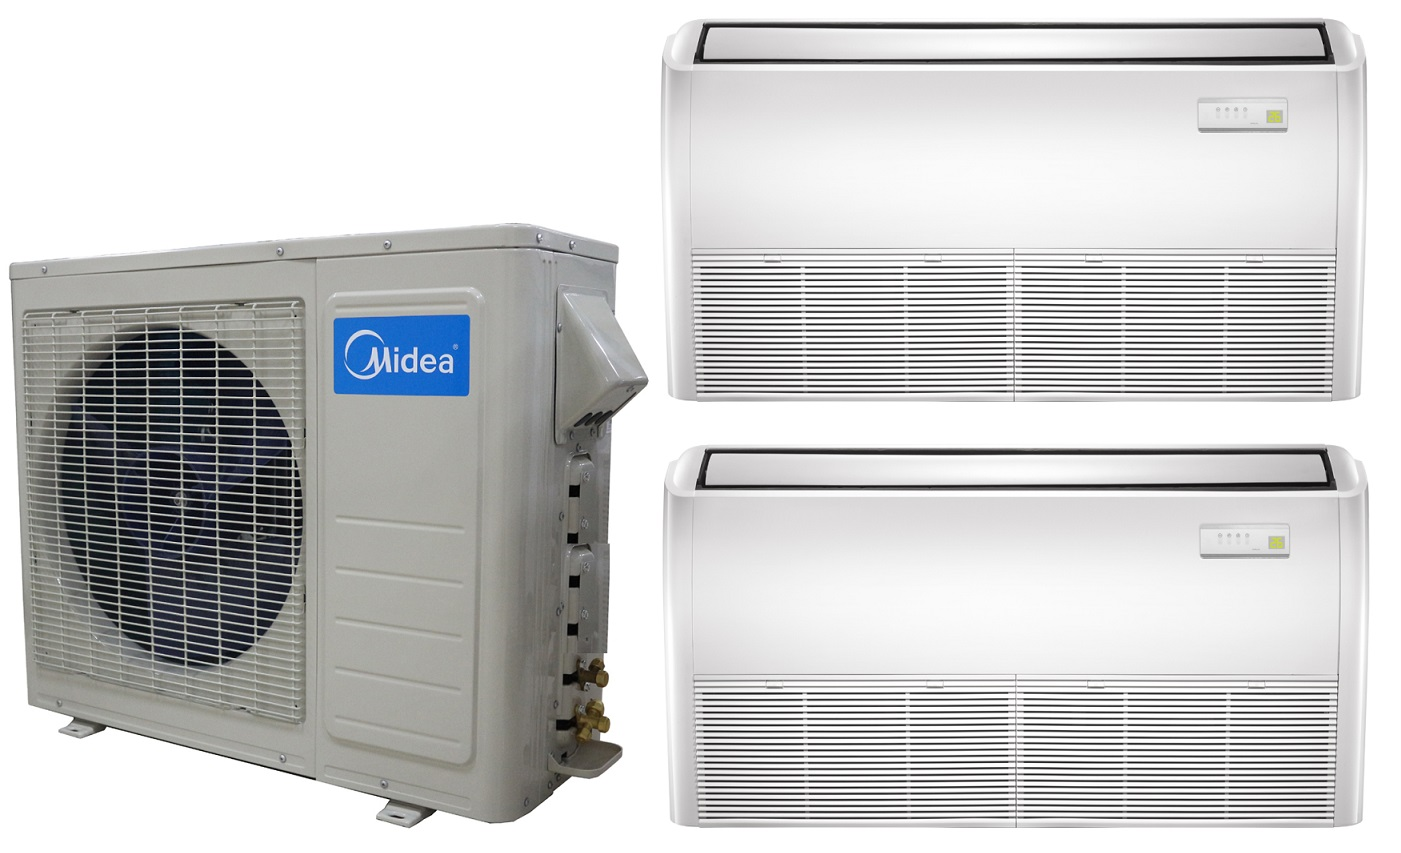 #165EB5 Midea Dual Zone 12k Ceiling Cassette Mini Split Heat Pump AC 2017 14572 Wall Pack Air Conditioner Puerto Rico photo with 1401x853 px on helpvideos.info - Air Conditioners, Air Coolers and more